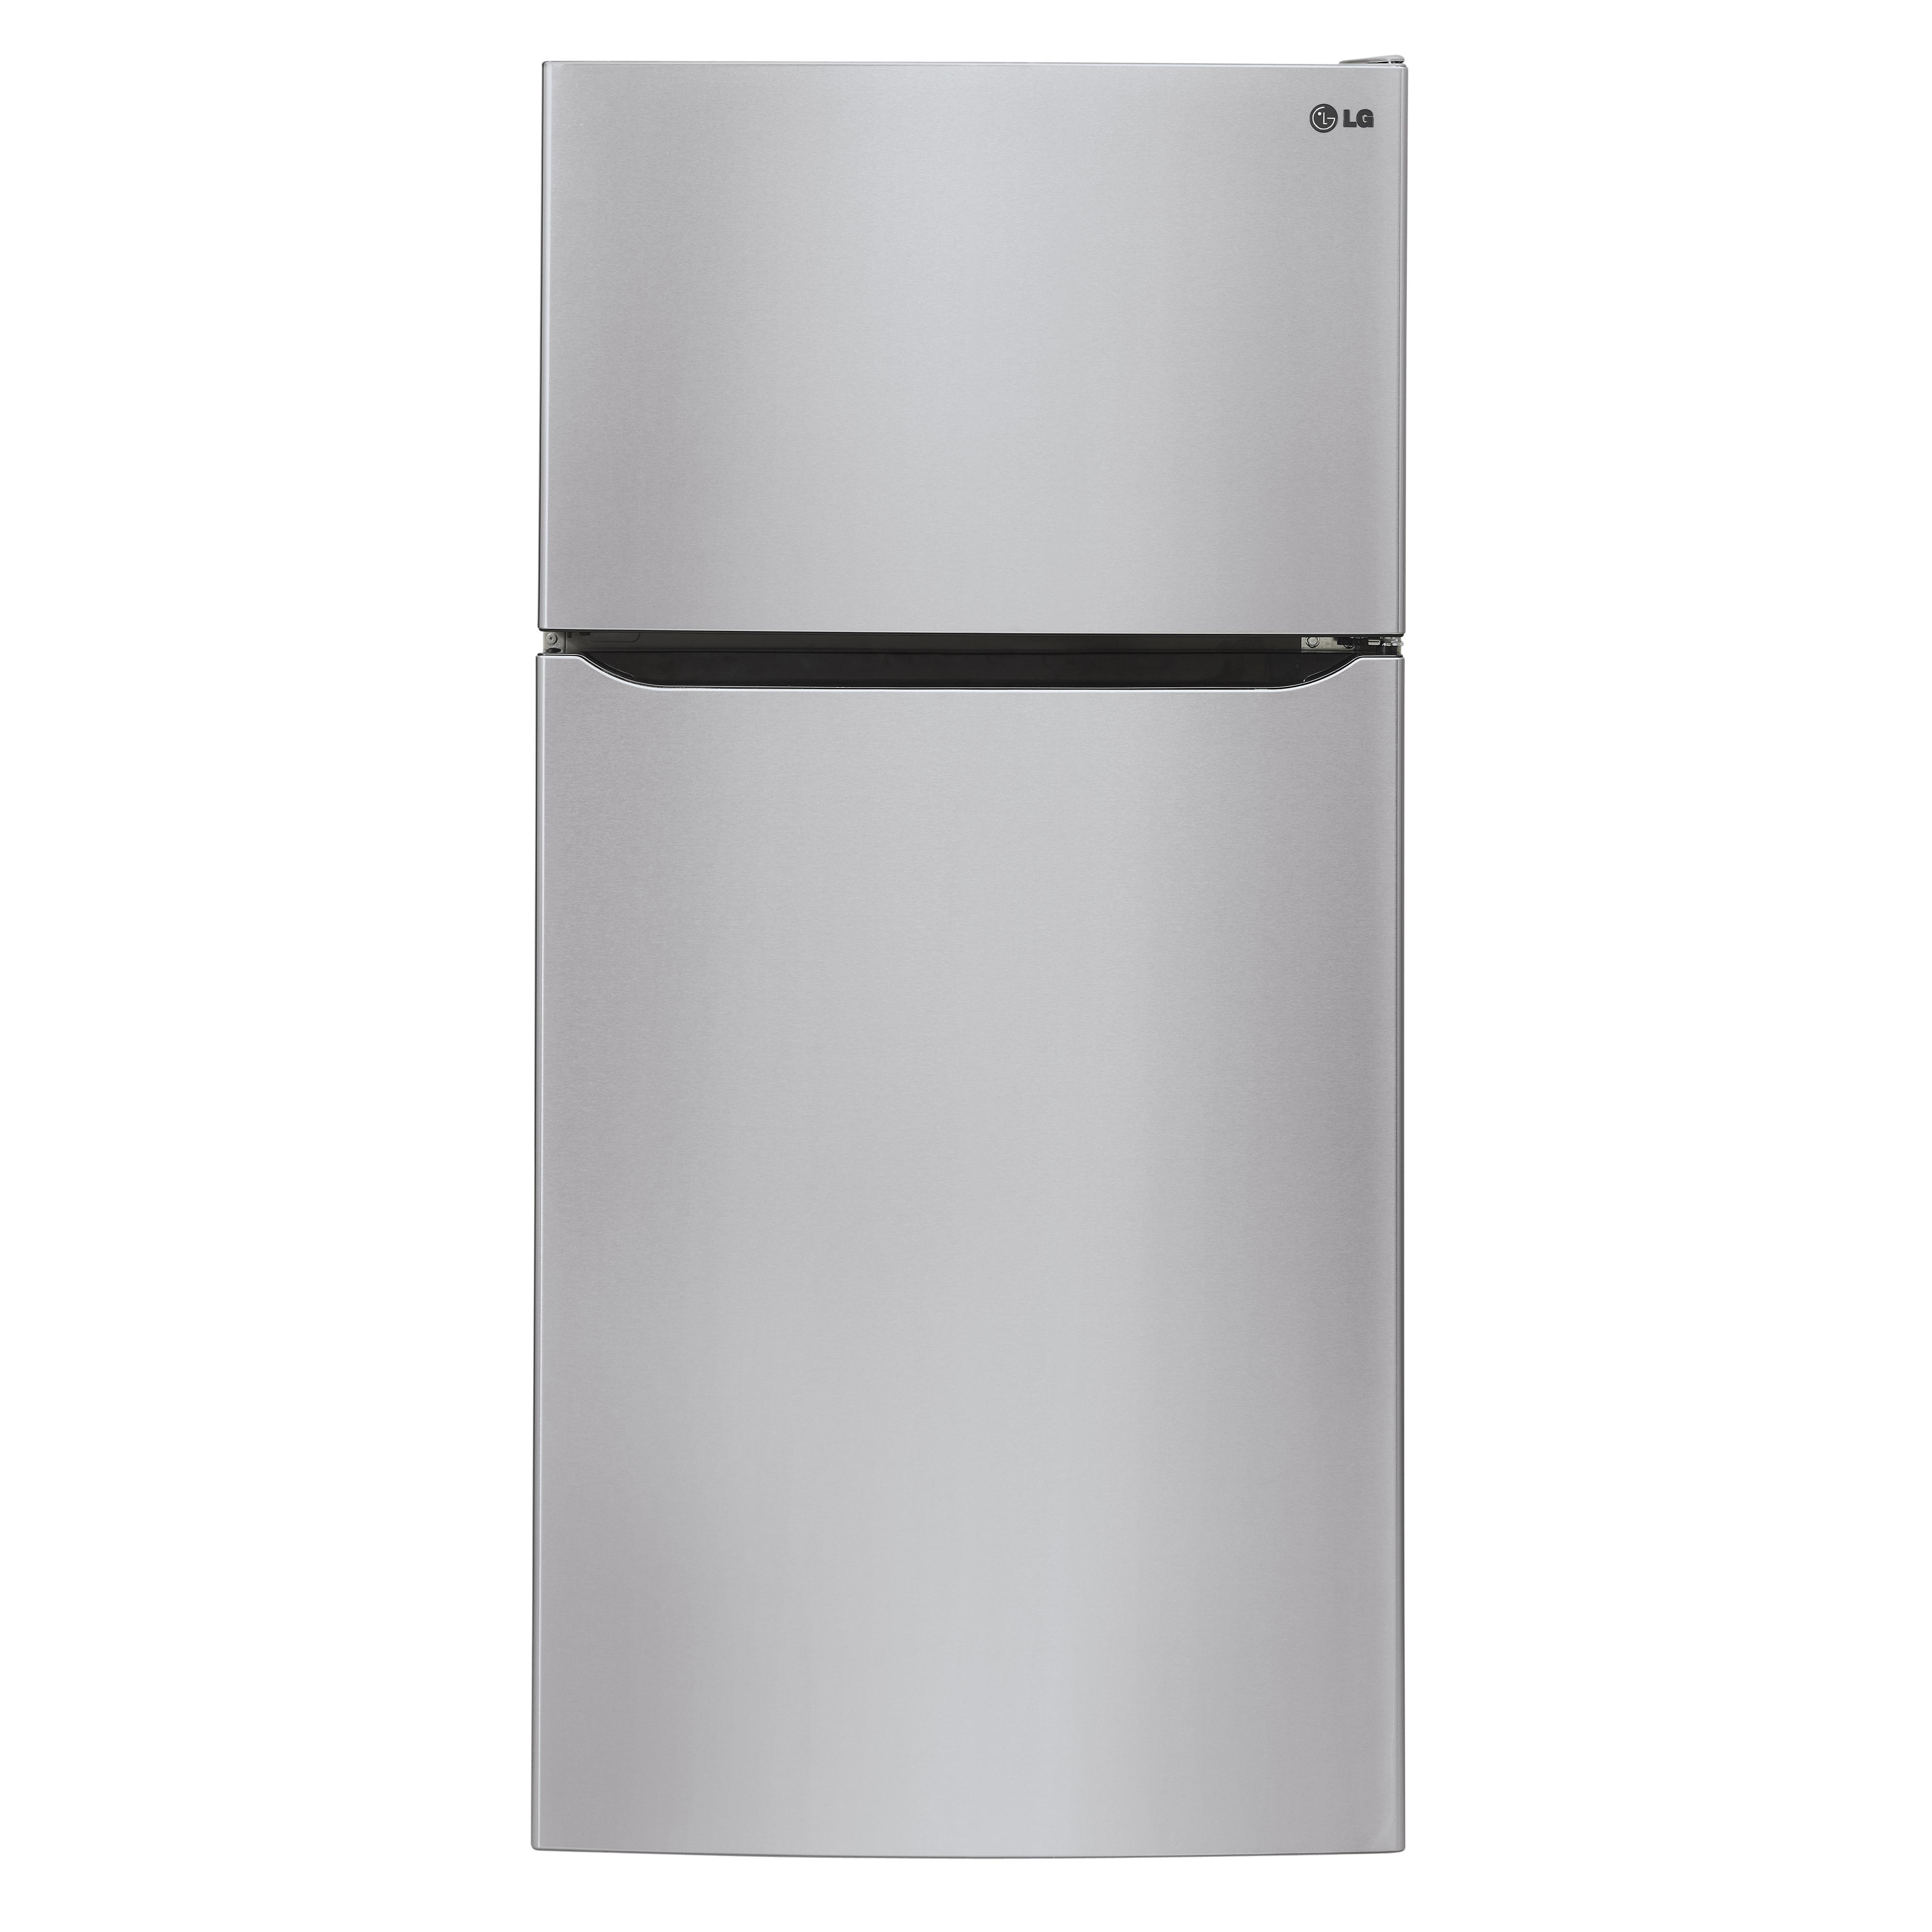 LG Appliances Top-Freezer Refrigerator 24 cu. ft. Top Freezer Refrigerator - Item Number: LTCS24223S